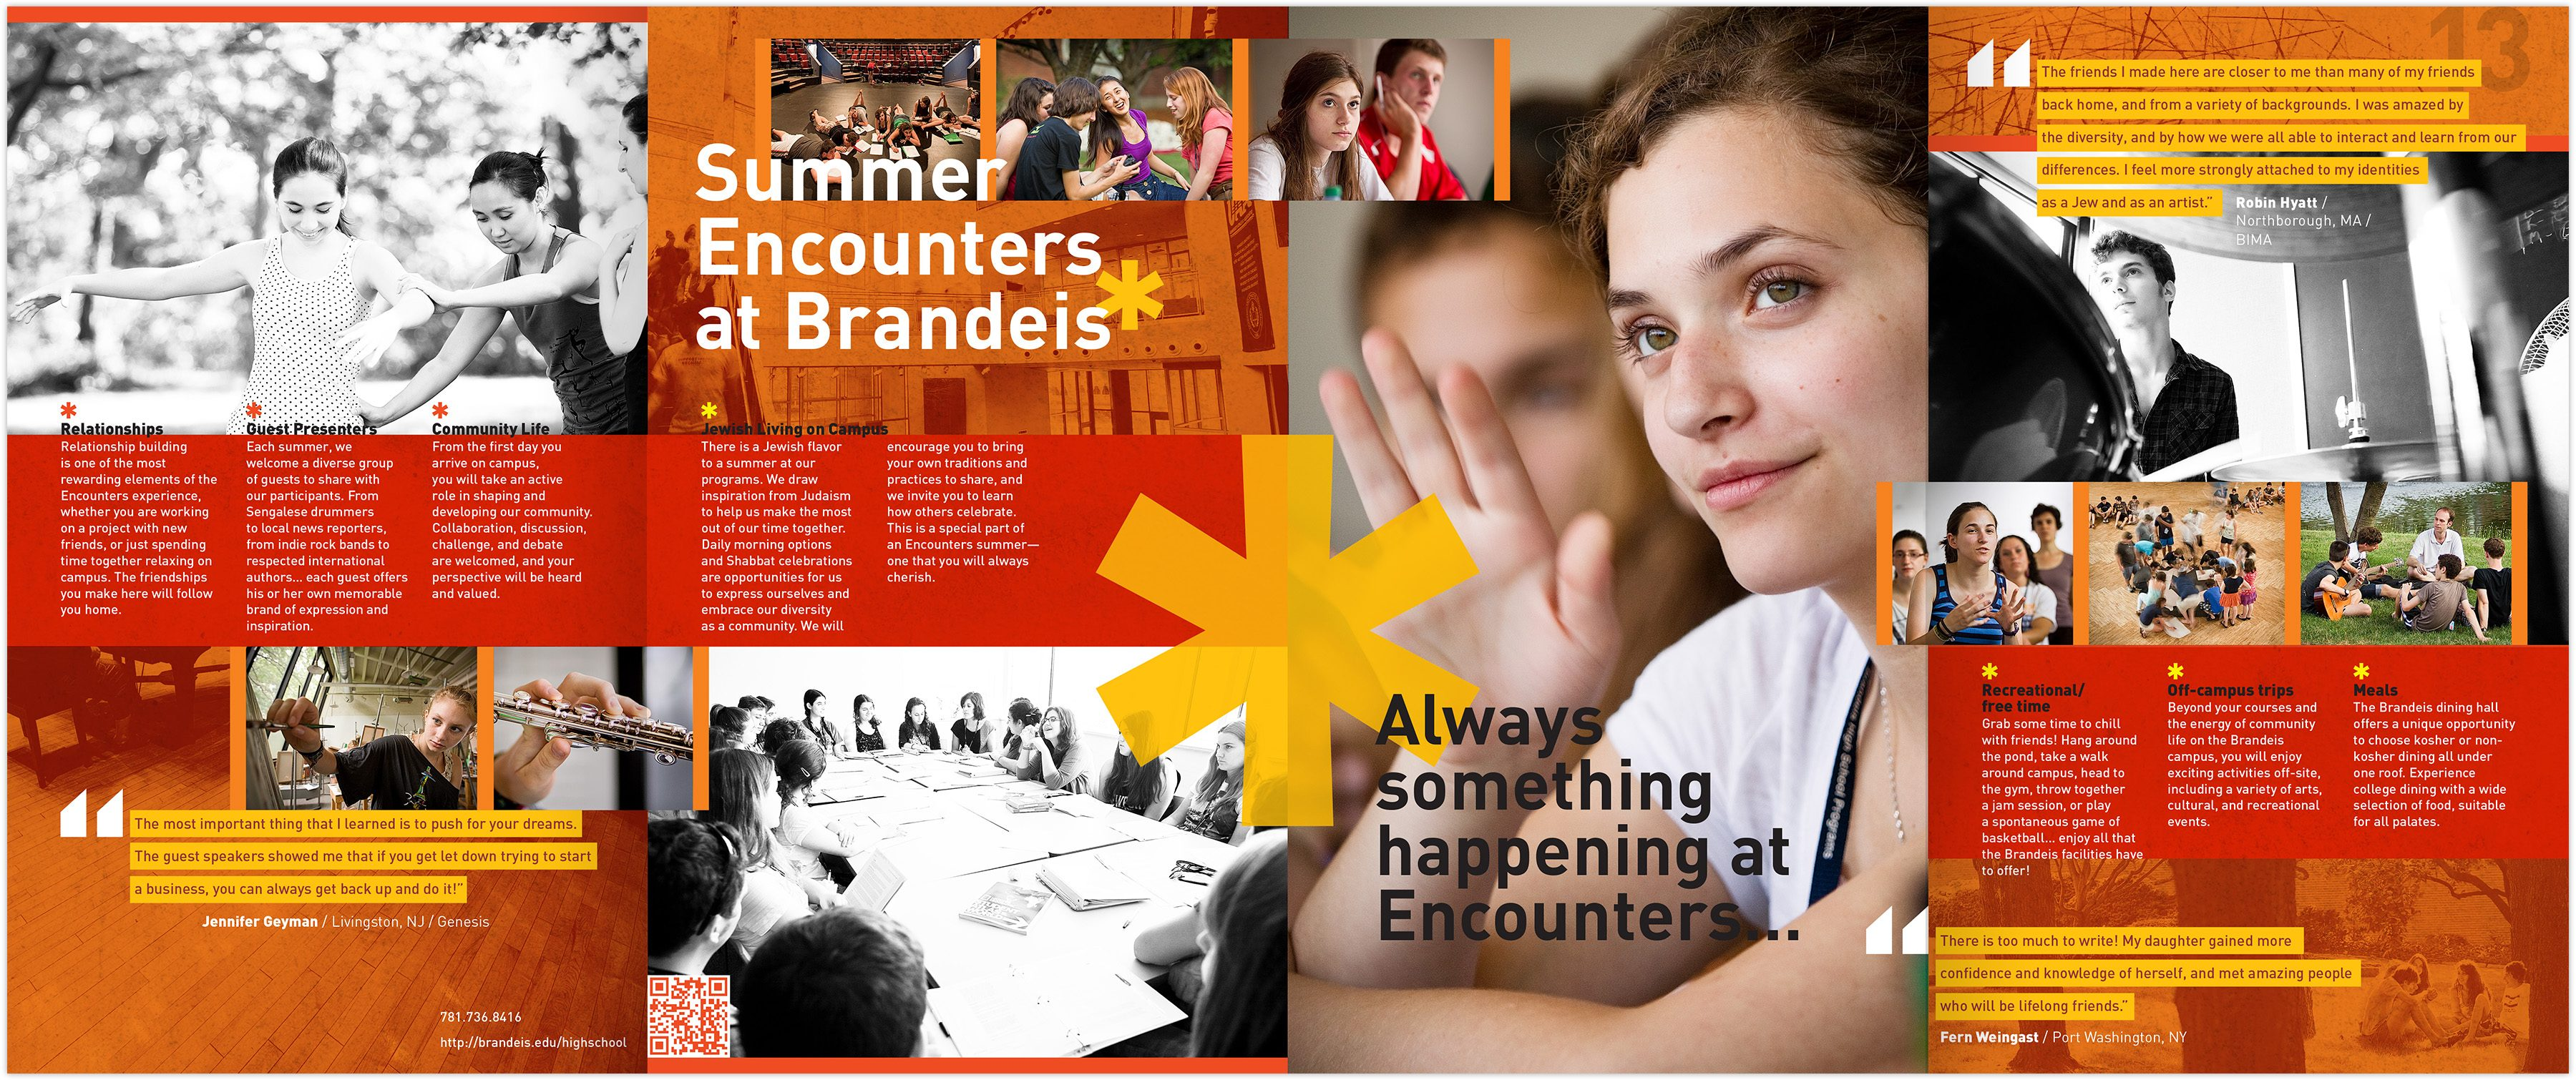 Brandeis High School Program Viewbook interior spread: Always something happening at Encounters...